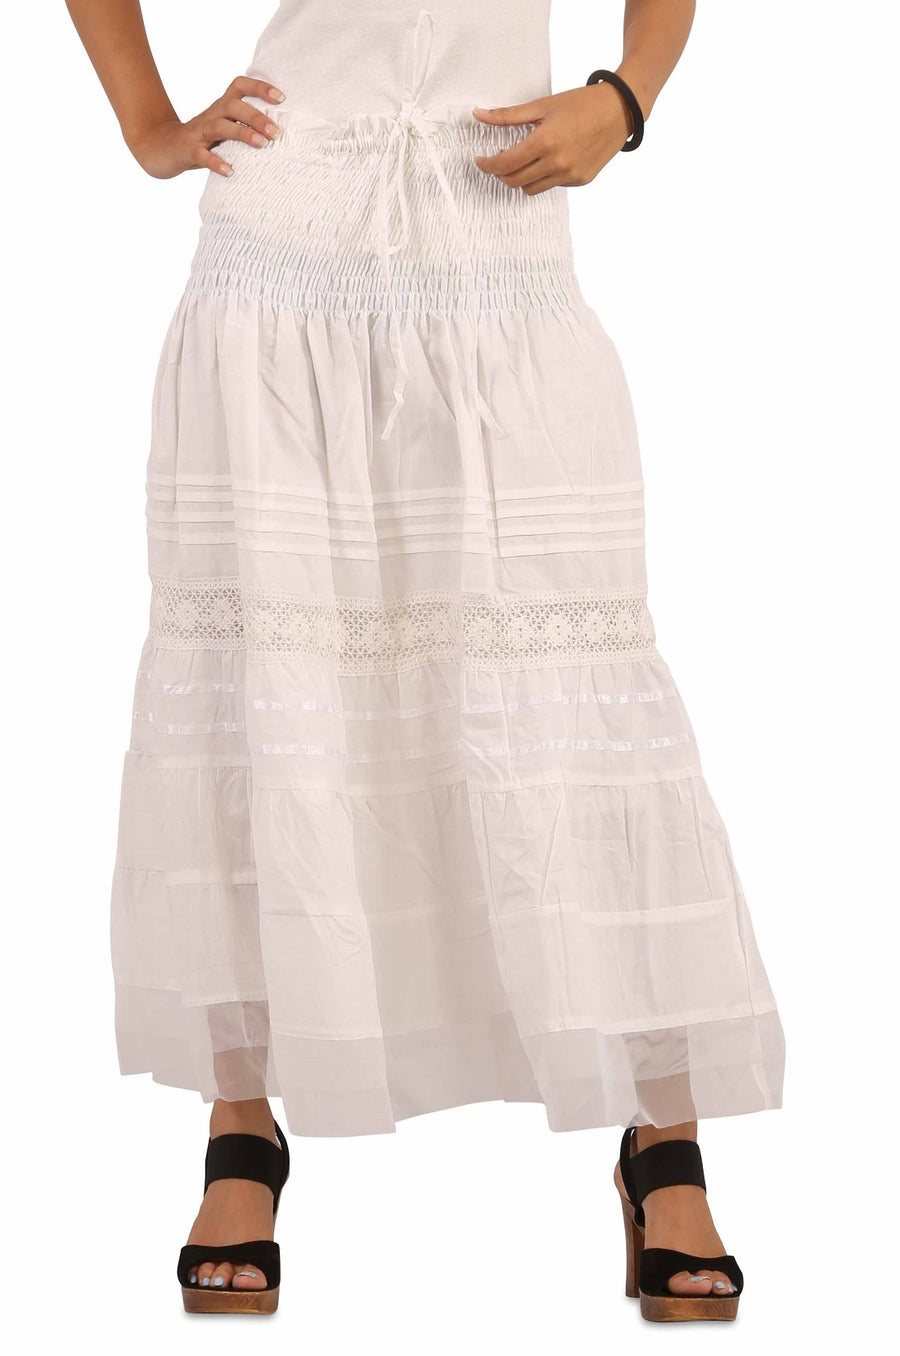 long white skirt, long skirts for women, long skirt, maxi skirt, ladies skirt, skirts online, summer skirts, winter skirts, cute skirts, cotton skirts, XL Skirt, XXL Skirts, Long skirts online , full skirt, long summer skirts, casual skirts